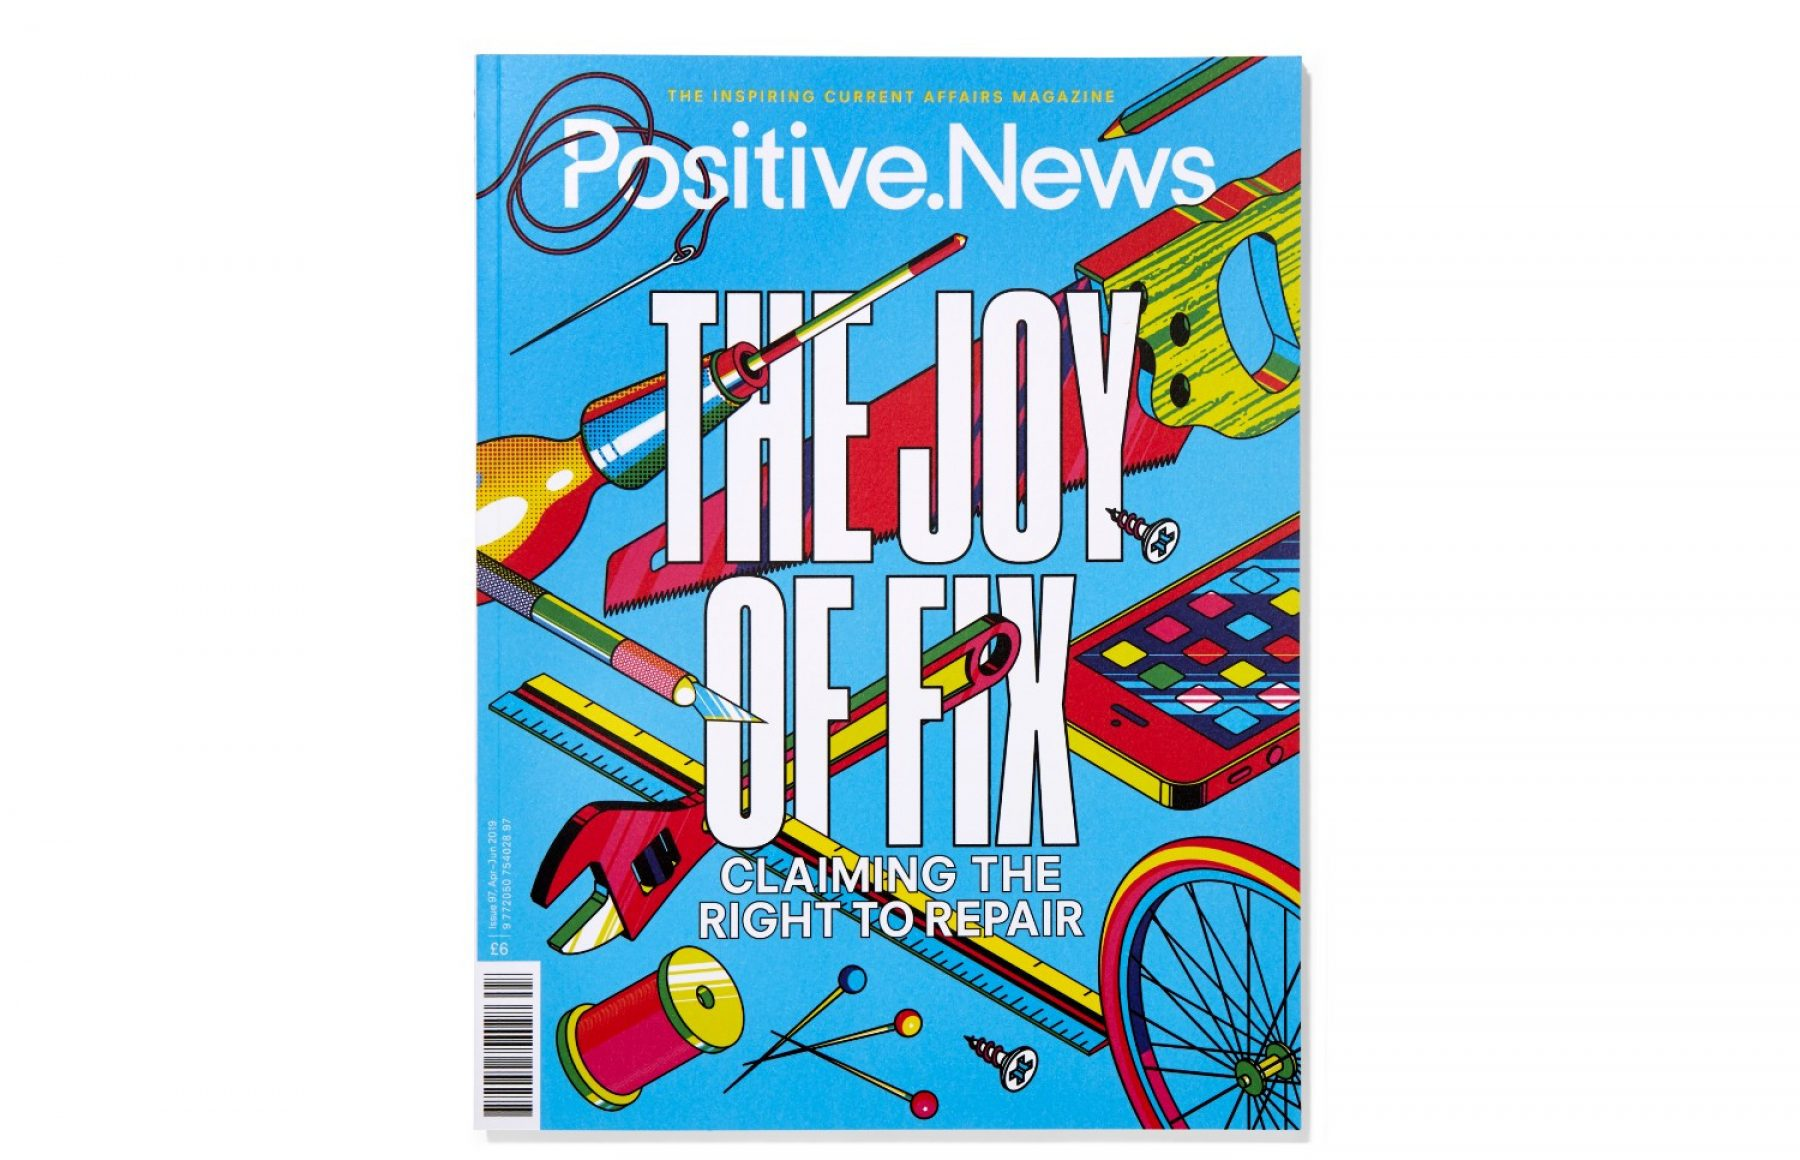 Image for 'Do something people': latest issue of Positive News magazine celebrates can-do attitude